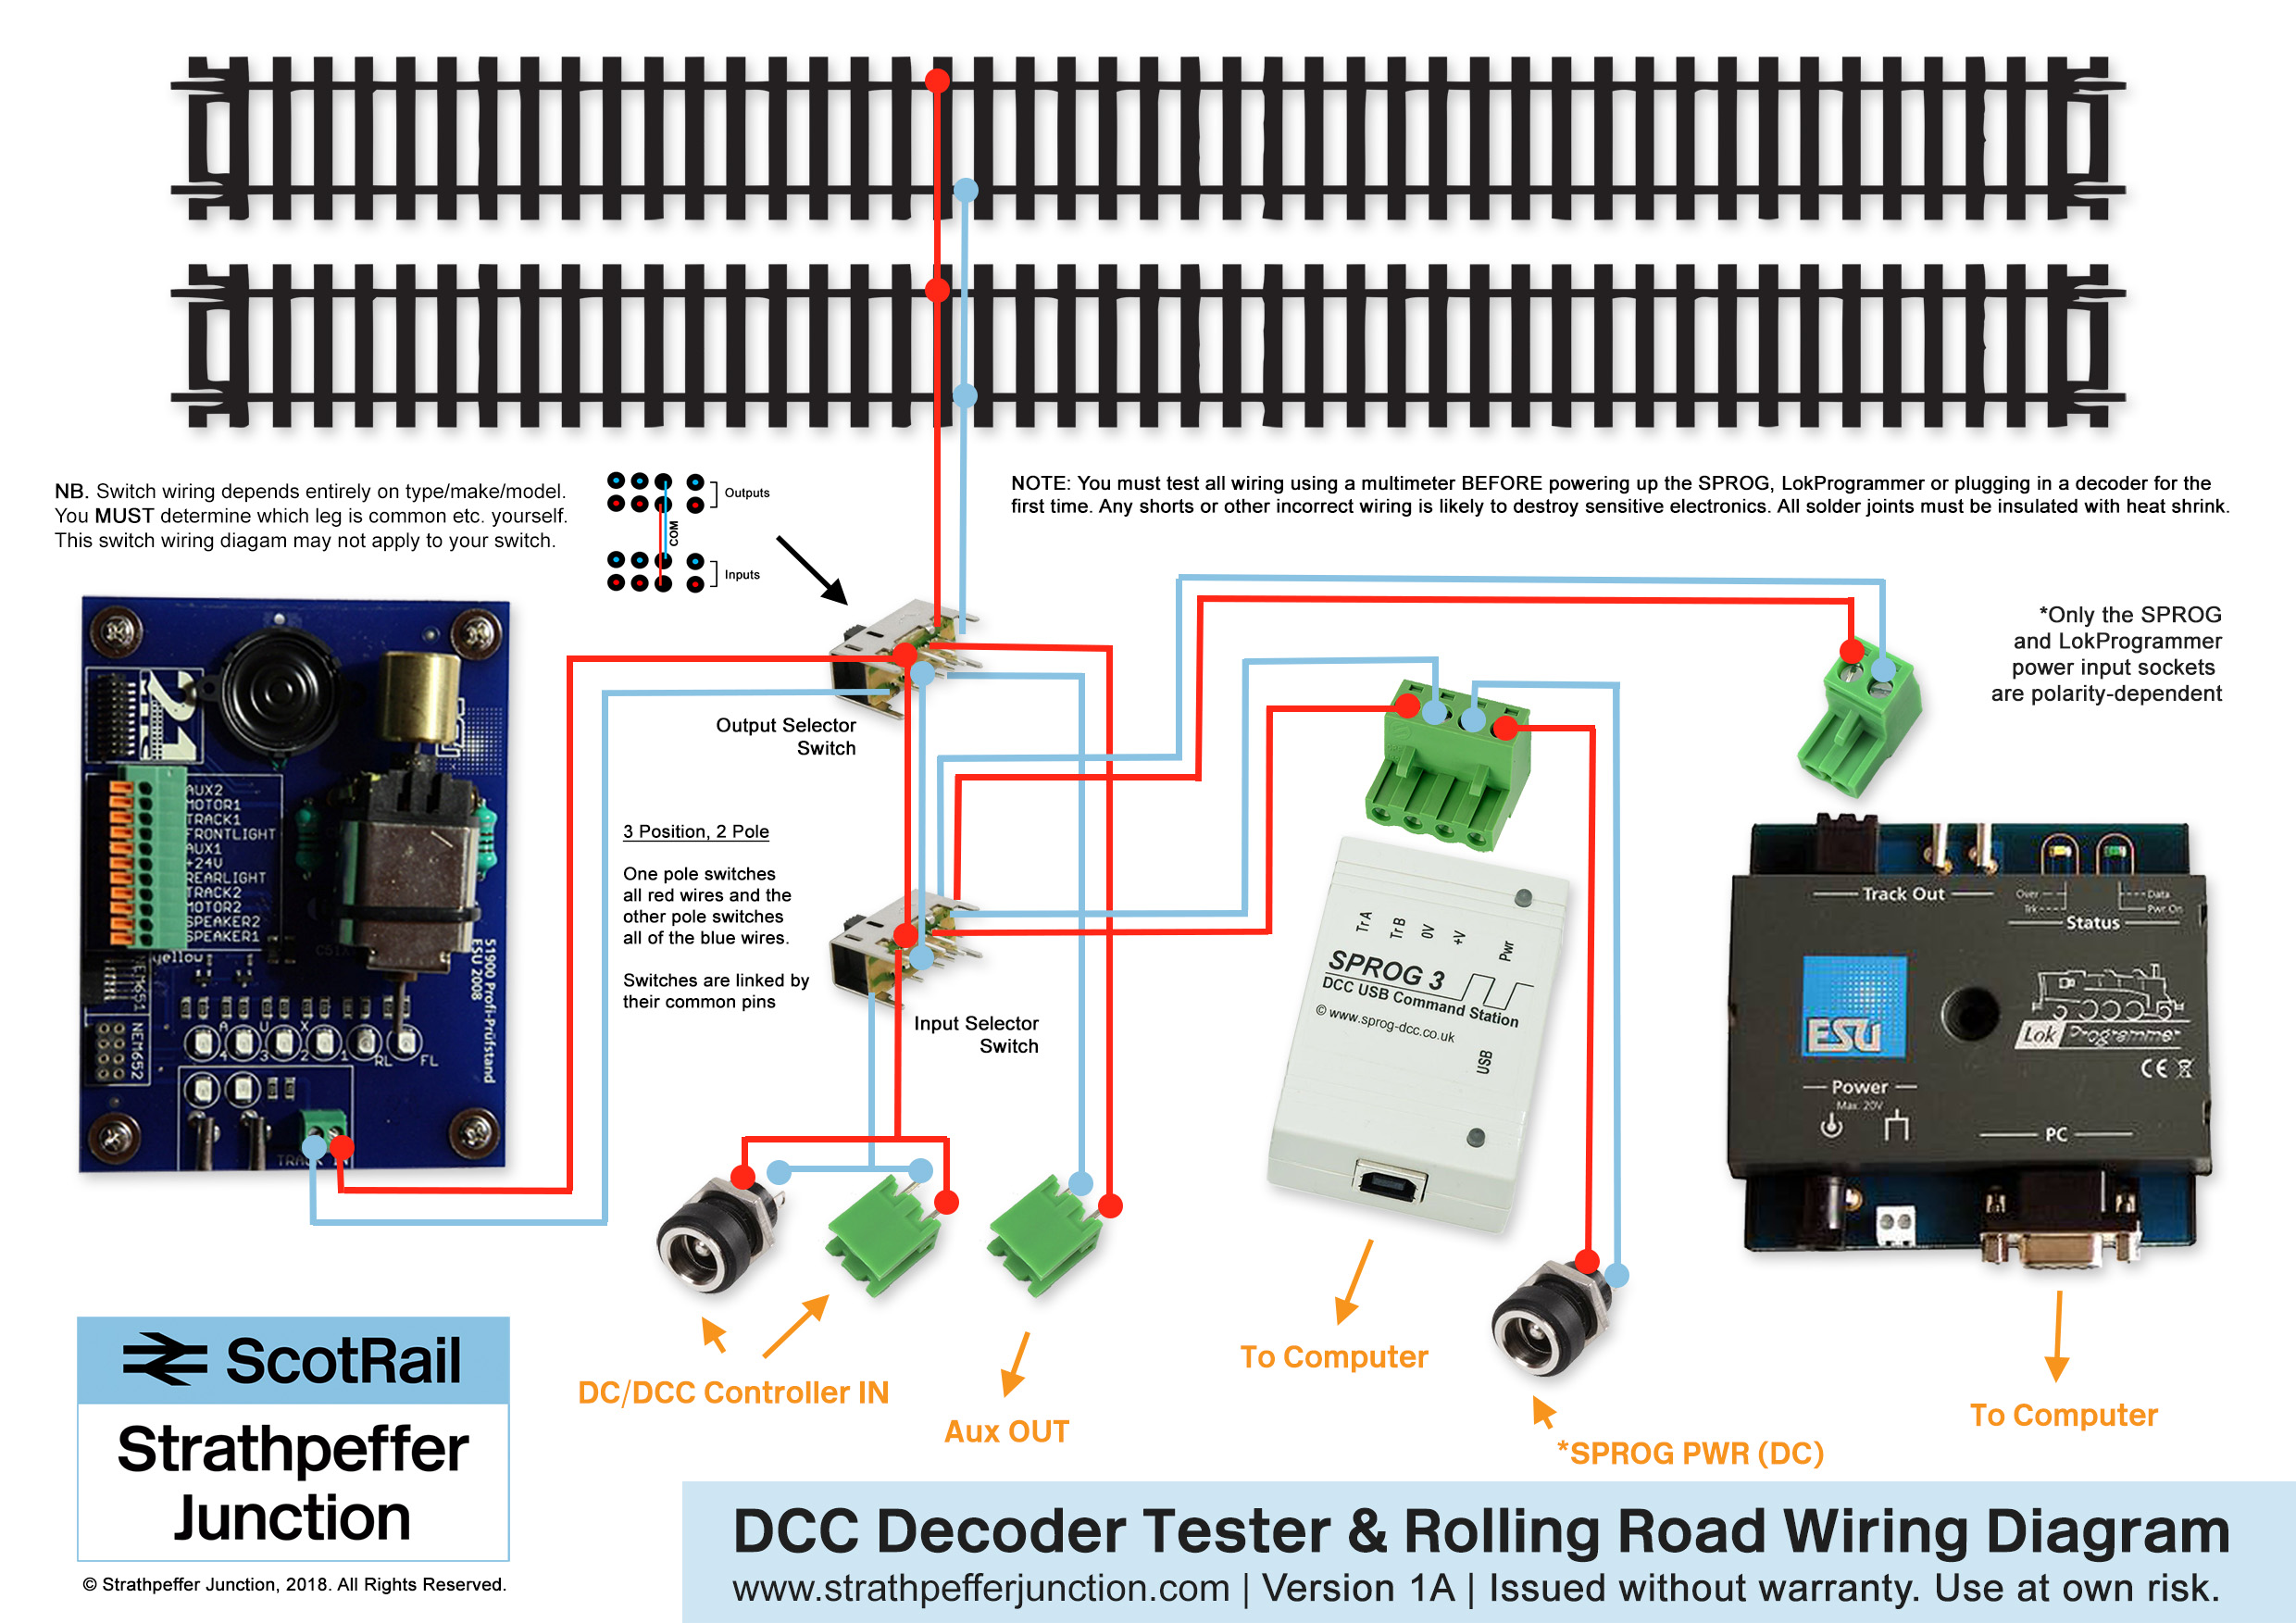 Digitrax Dcc Wiring Diagrams Experience Of Diagram Booster Sample Schema Online Rh 20 17 Travelmate Nz De Pm42 With Examples